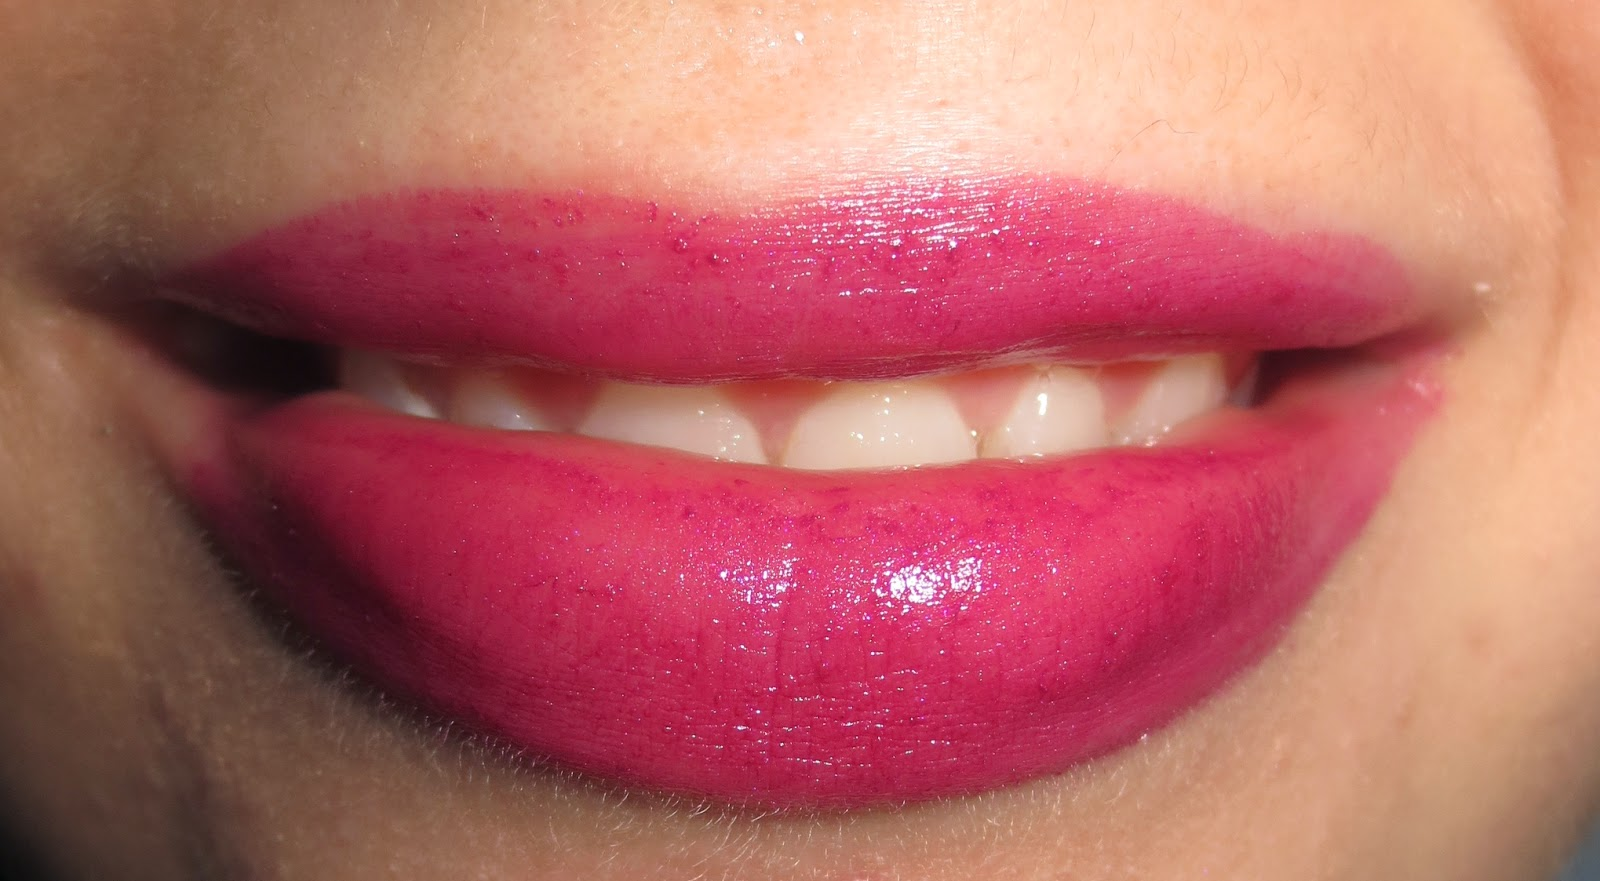 Smashbox Be Legendary Lipstick in Vivid Violet on lips